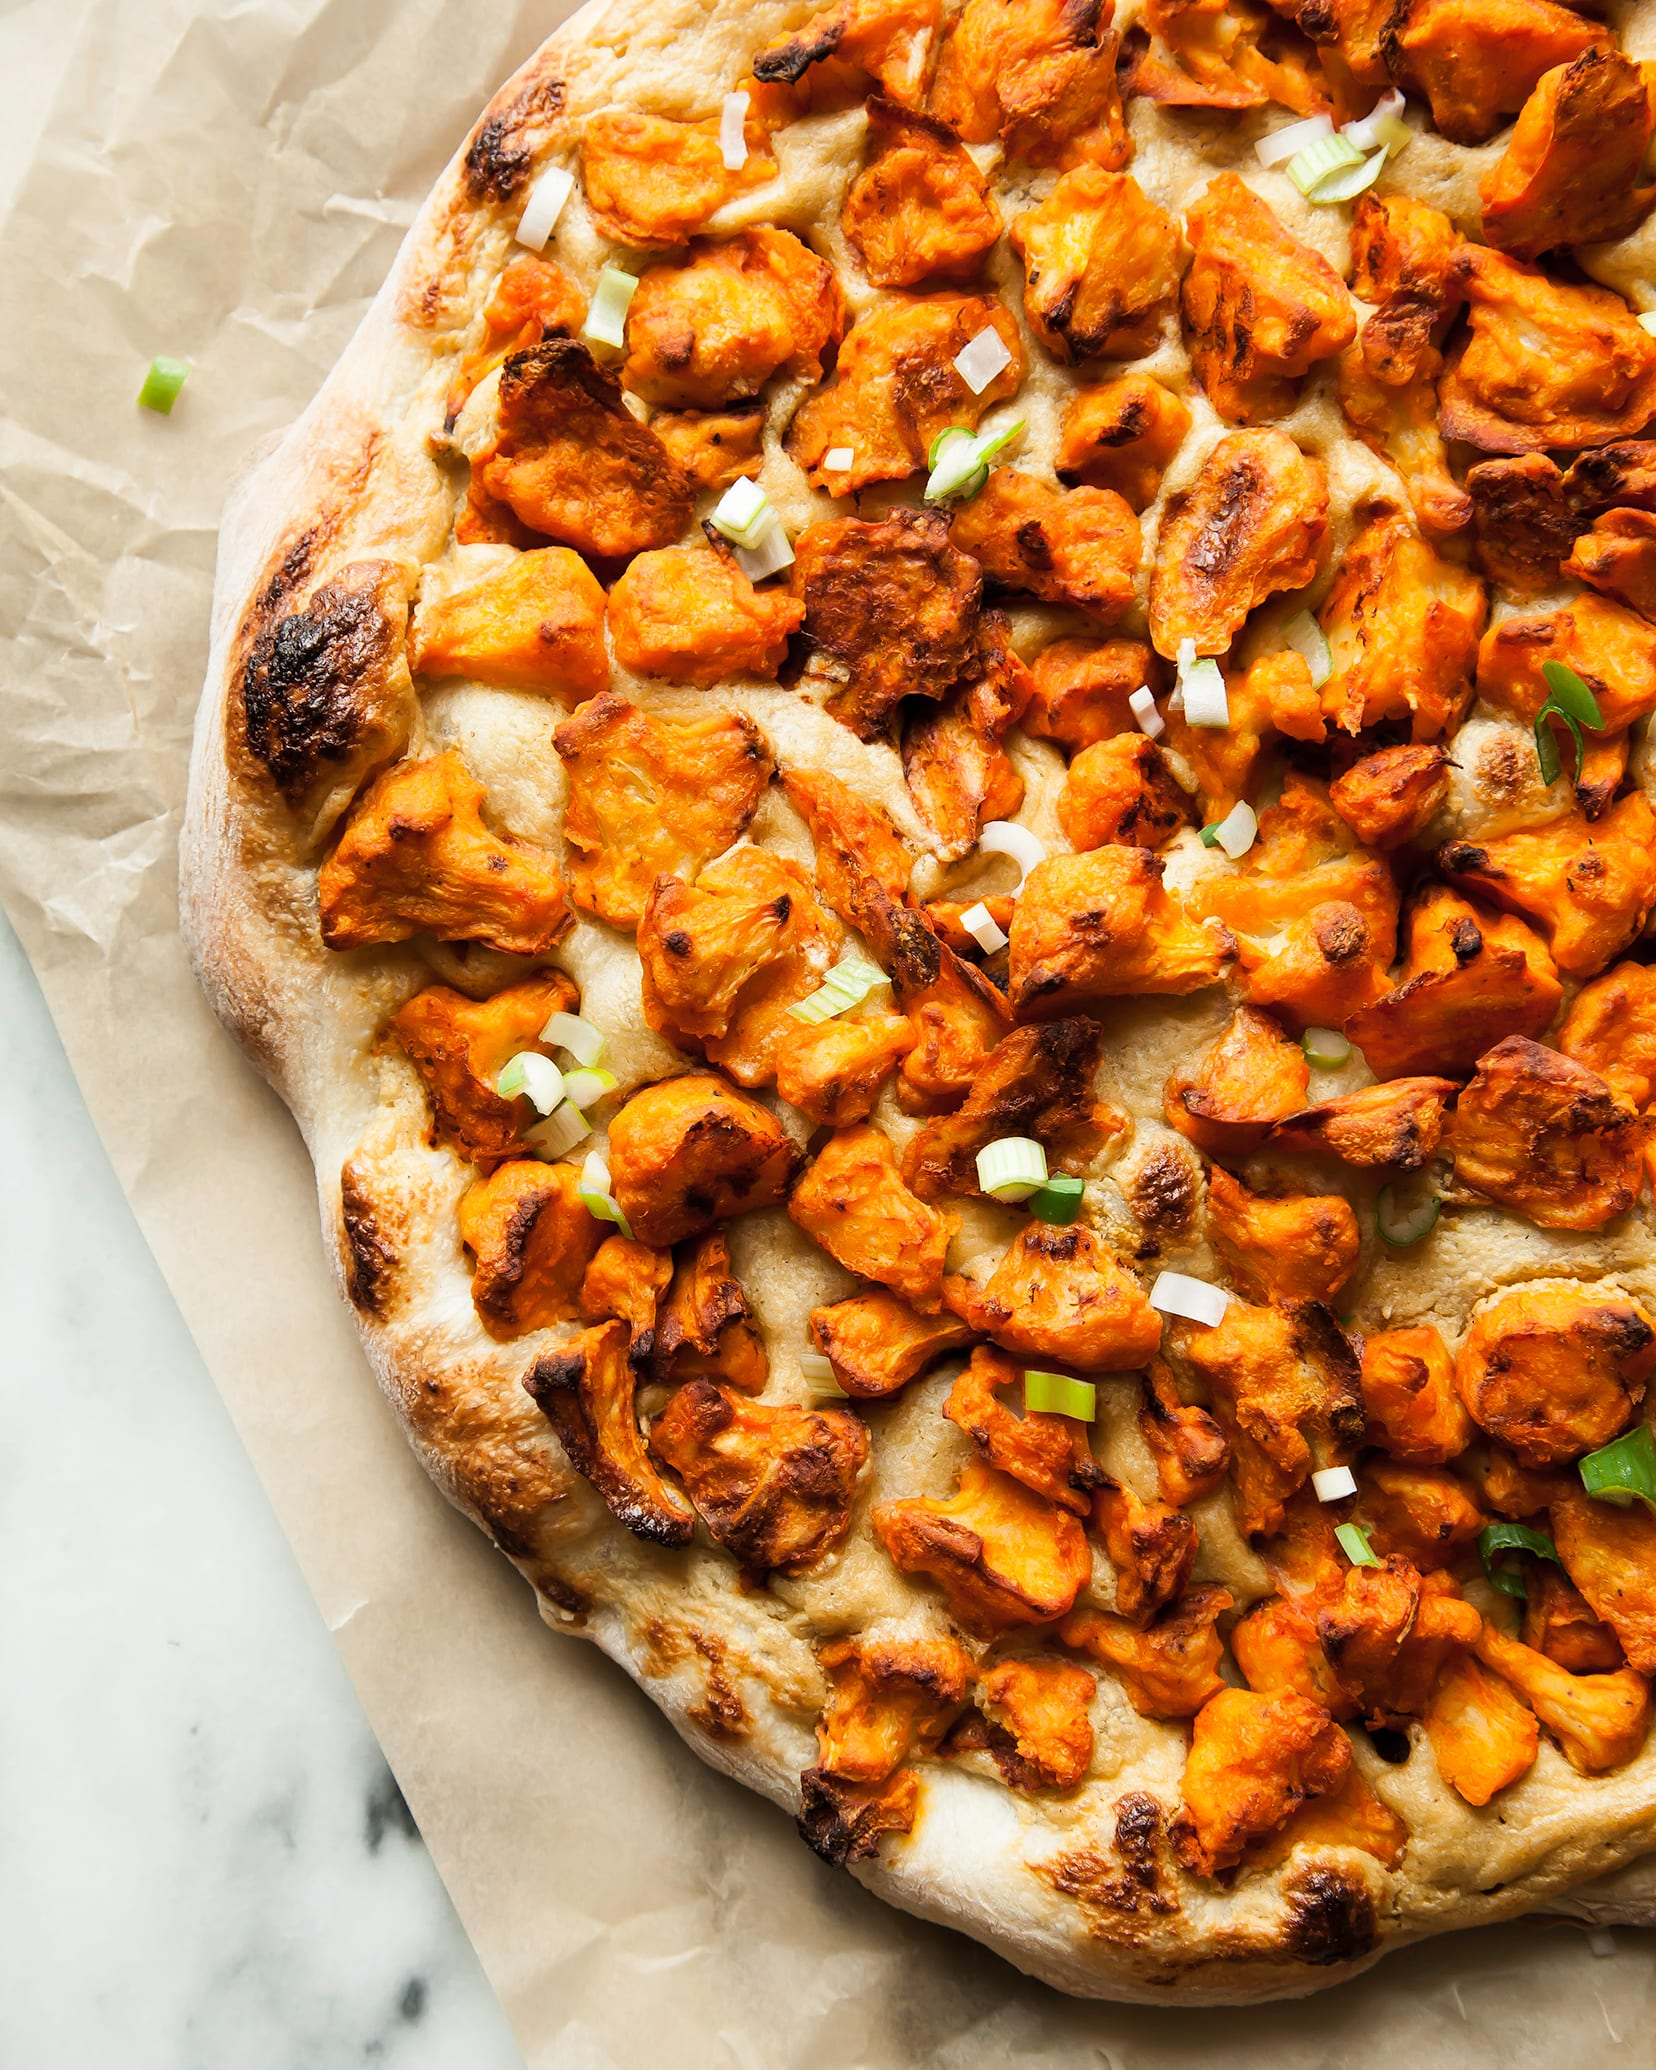 Image shows a baked pizza with Buffalo cauliflower on top.